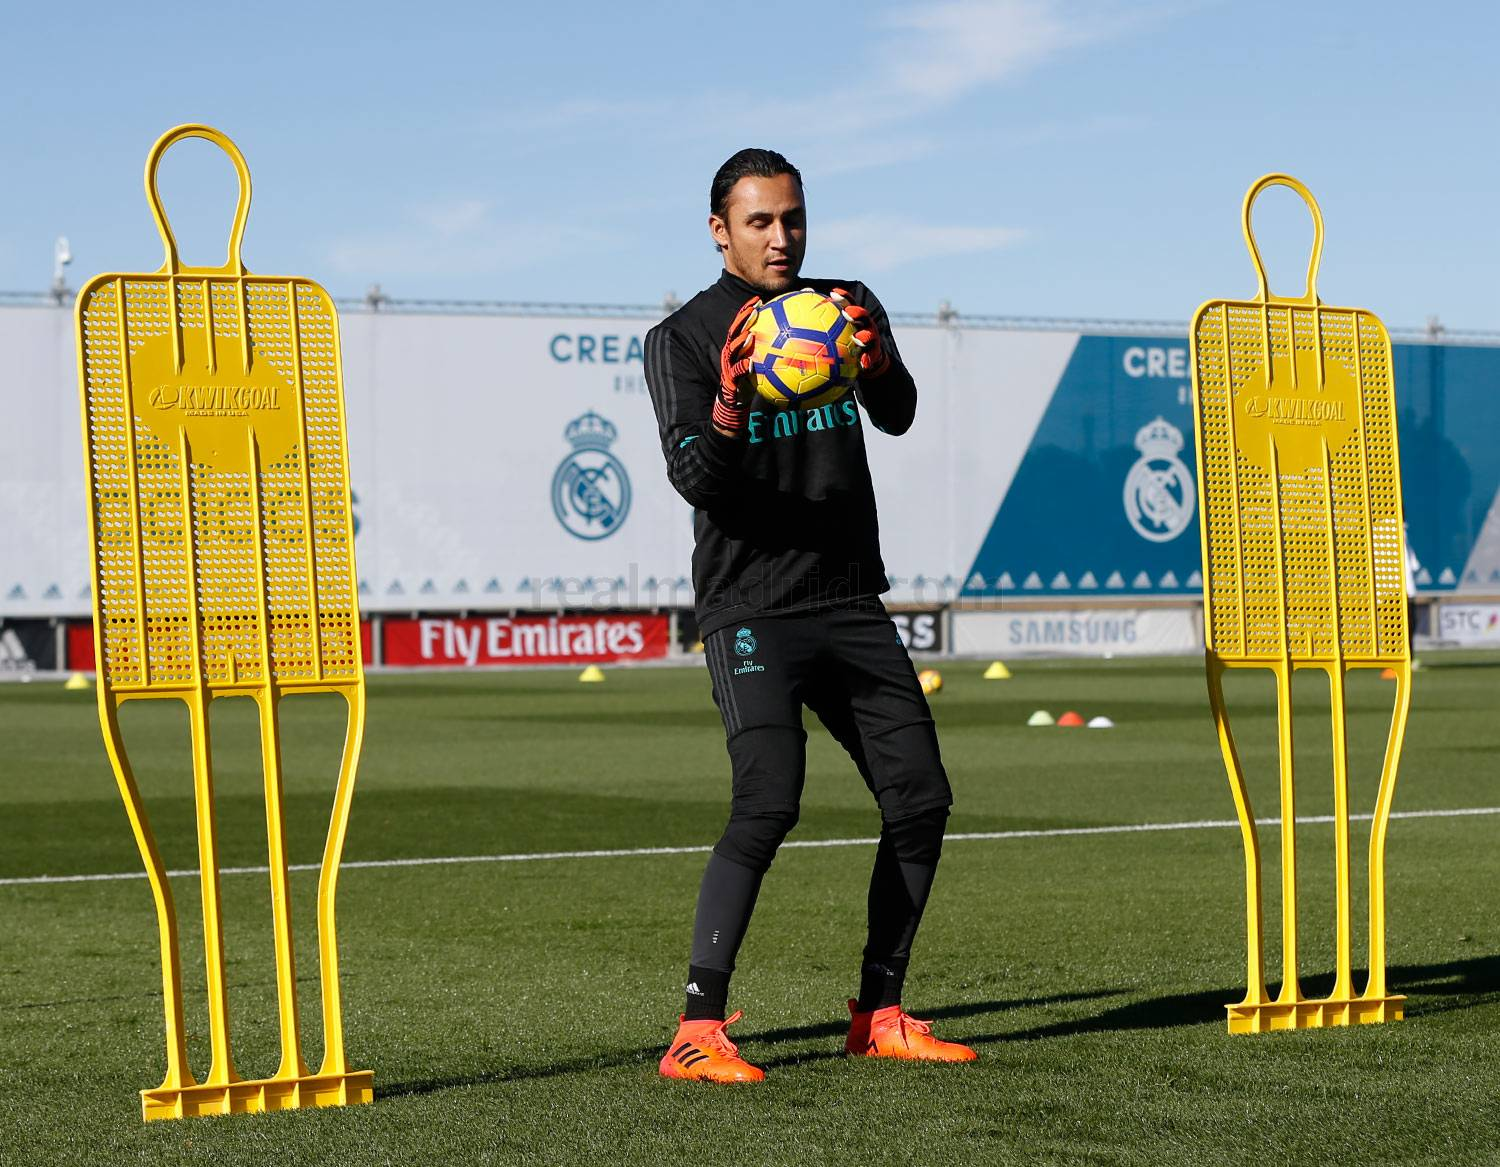 Real Madrid - Entrenamiento del Real Madrid - 16-11-2017